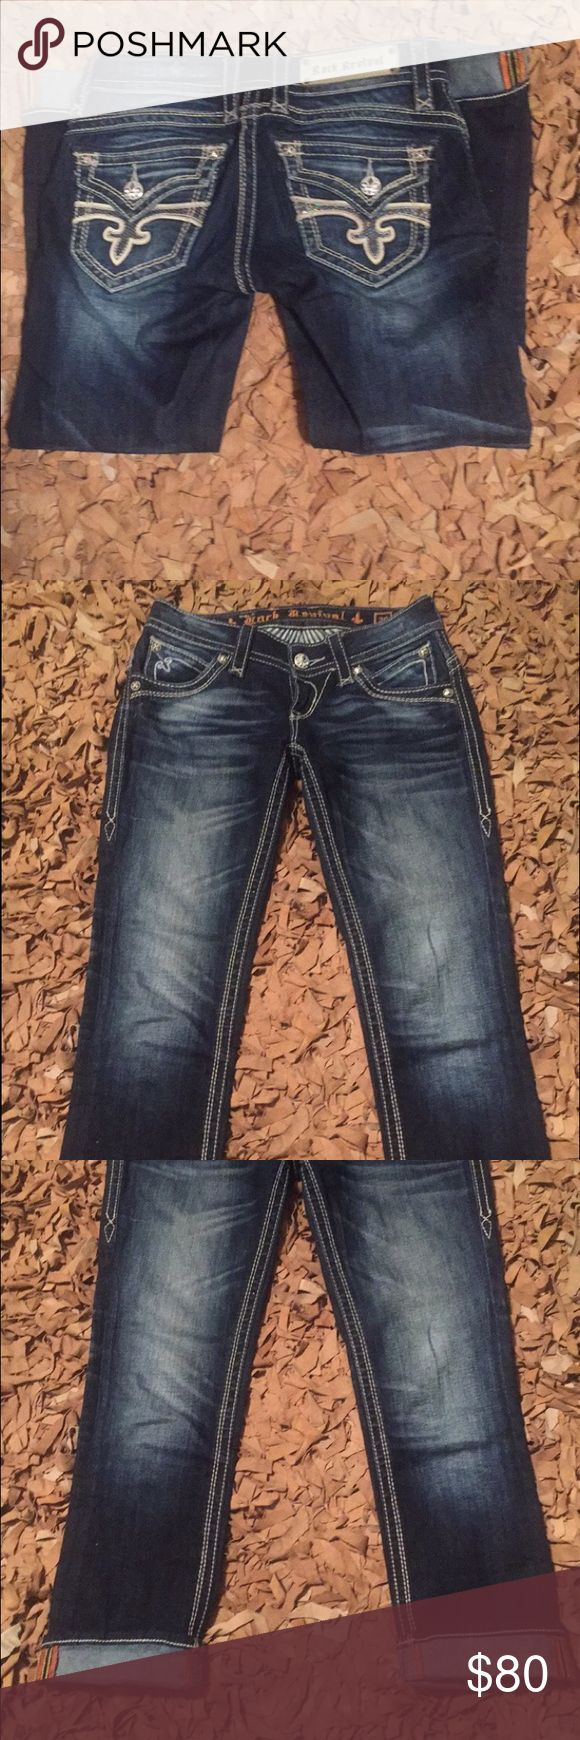 Rock Revival Dark wash Capri Rock revival dark wash Capri, worn twice, size 26 Rock Revival Jeans Ankle & Cropped